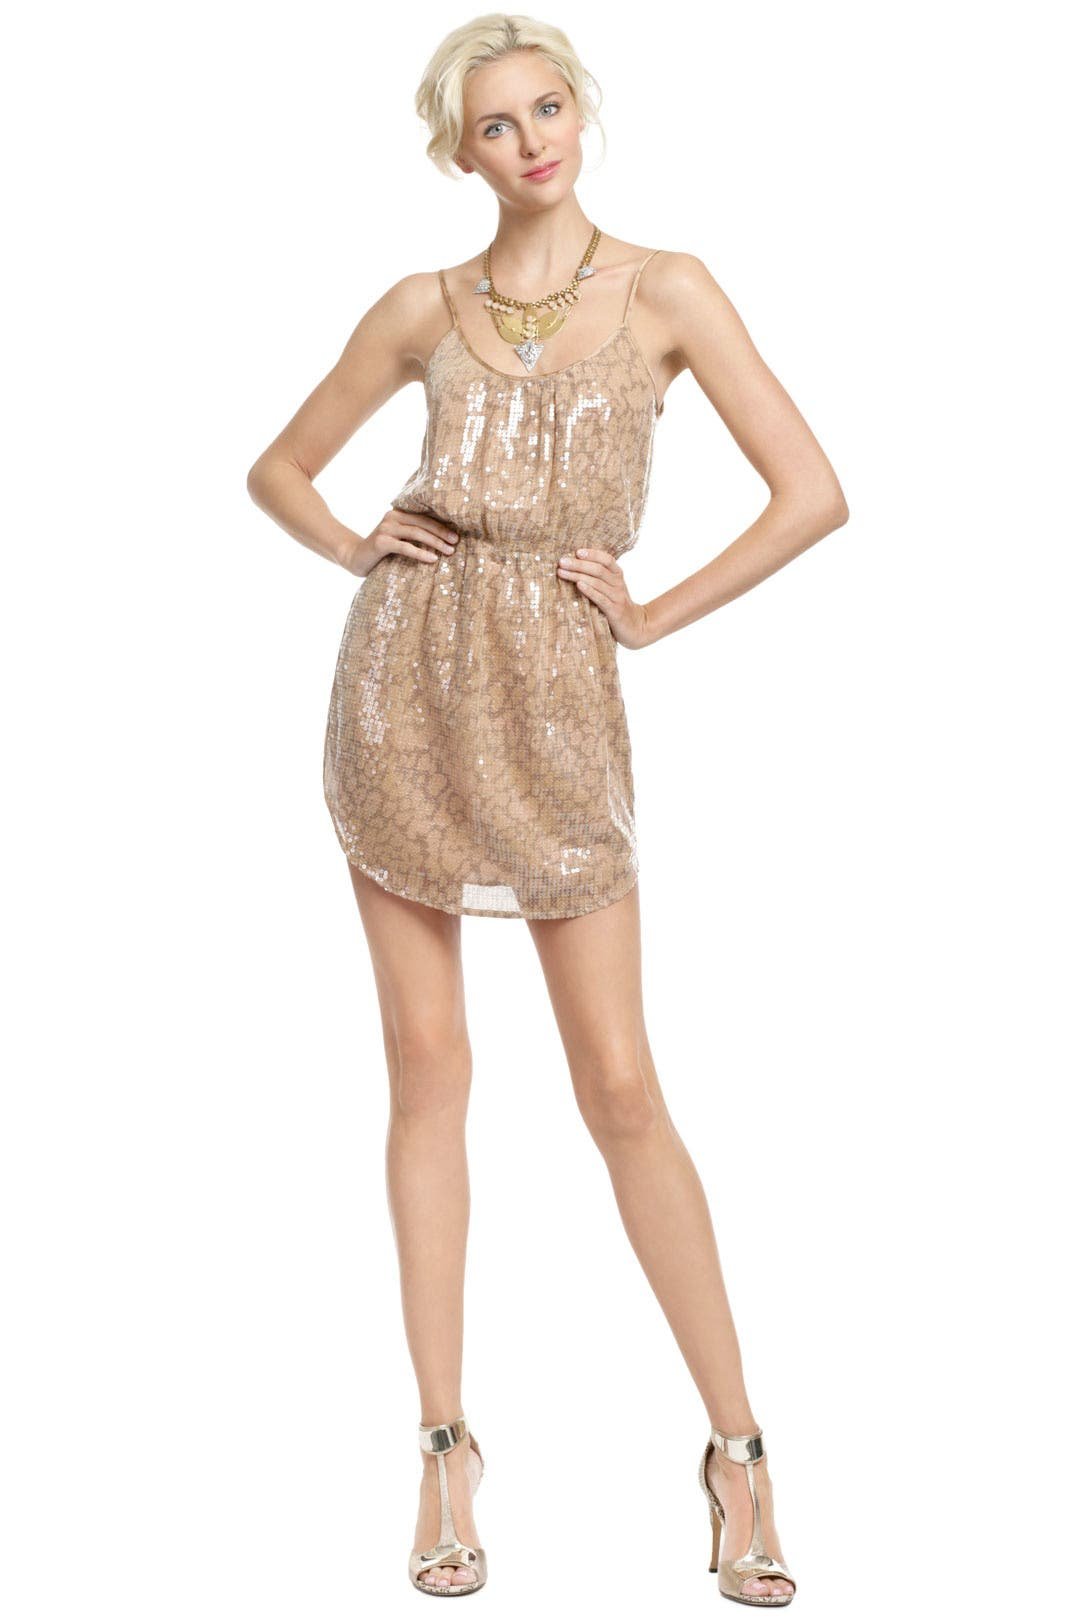 Desert Sequin Sun Dress by Rebecca Taylor for $72 | Rent the Runway